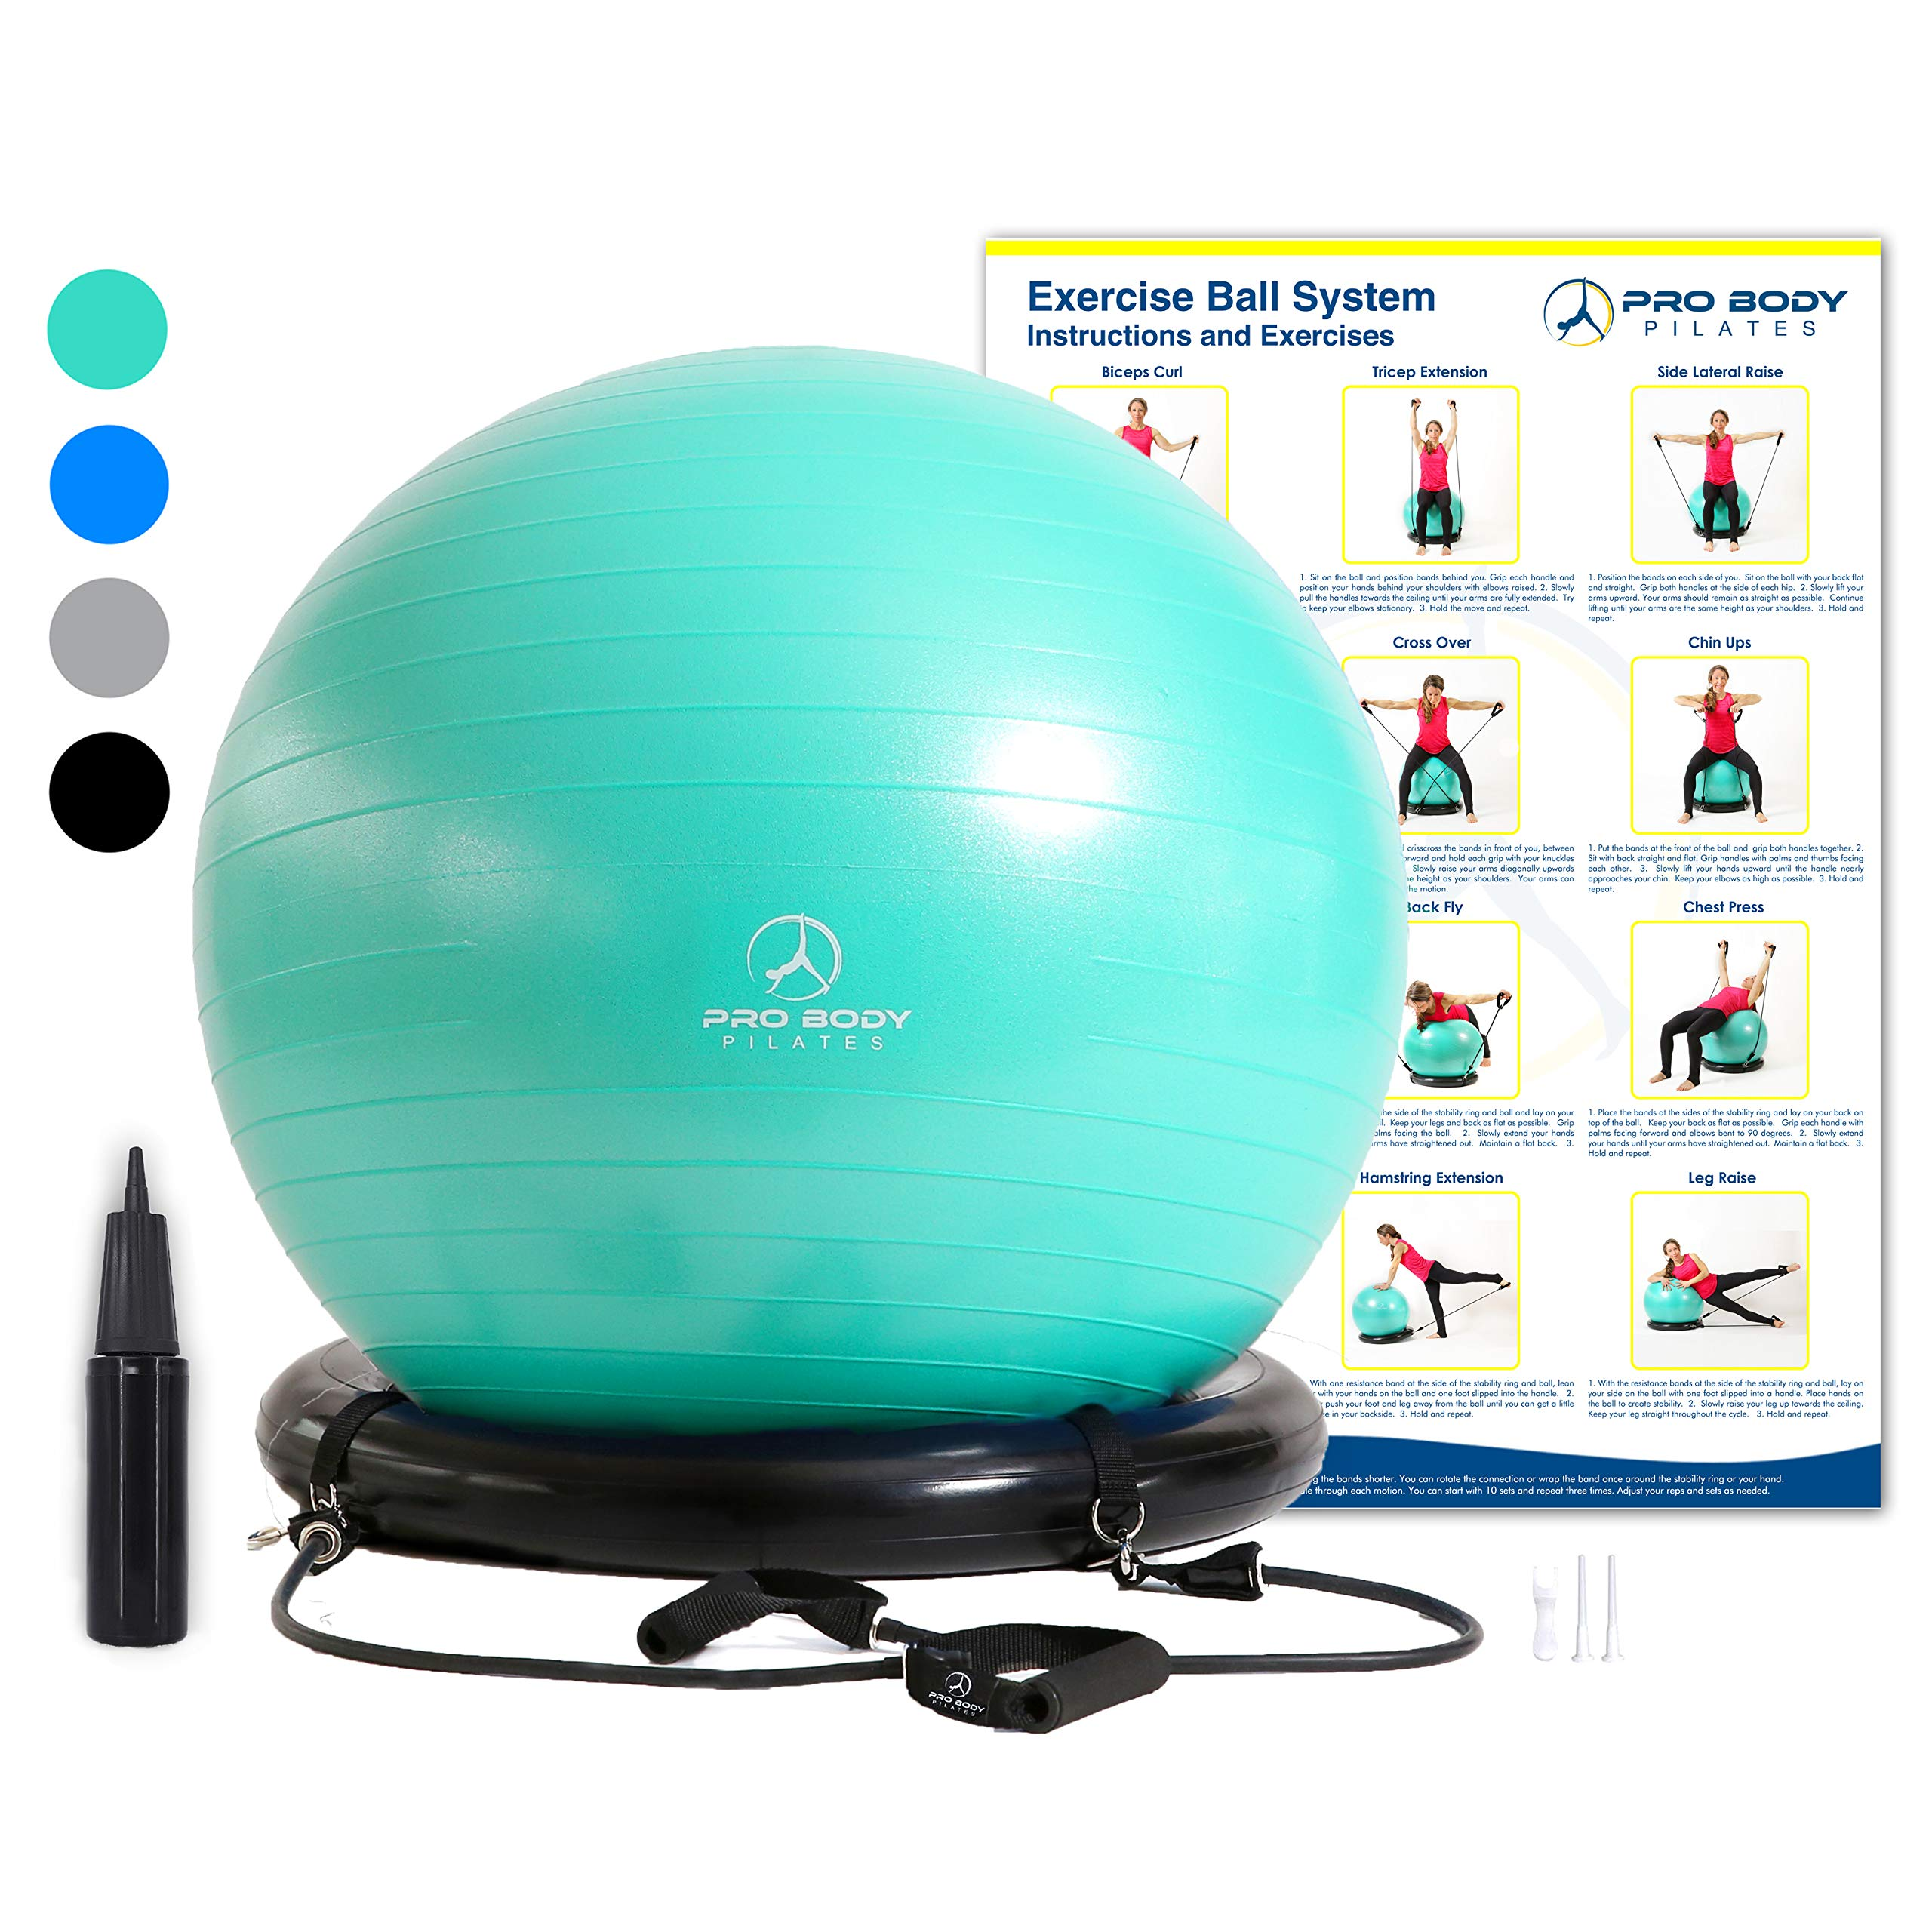 Exercise Ball Chair System - Yoga and Pilates 65 cm Ball with Stability Base and Workout Resistance Bands for Gym, Home, or Office (Aqua, 65 cm)